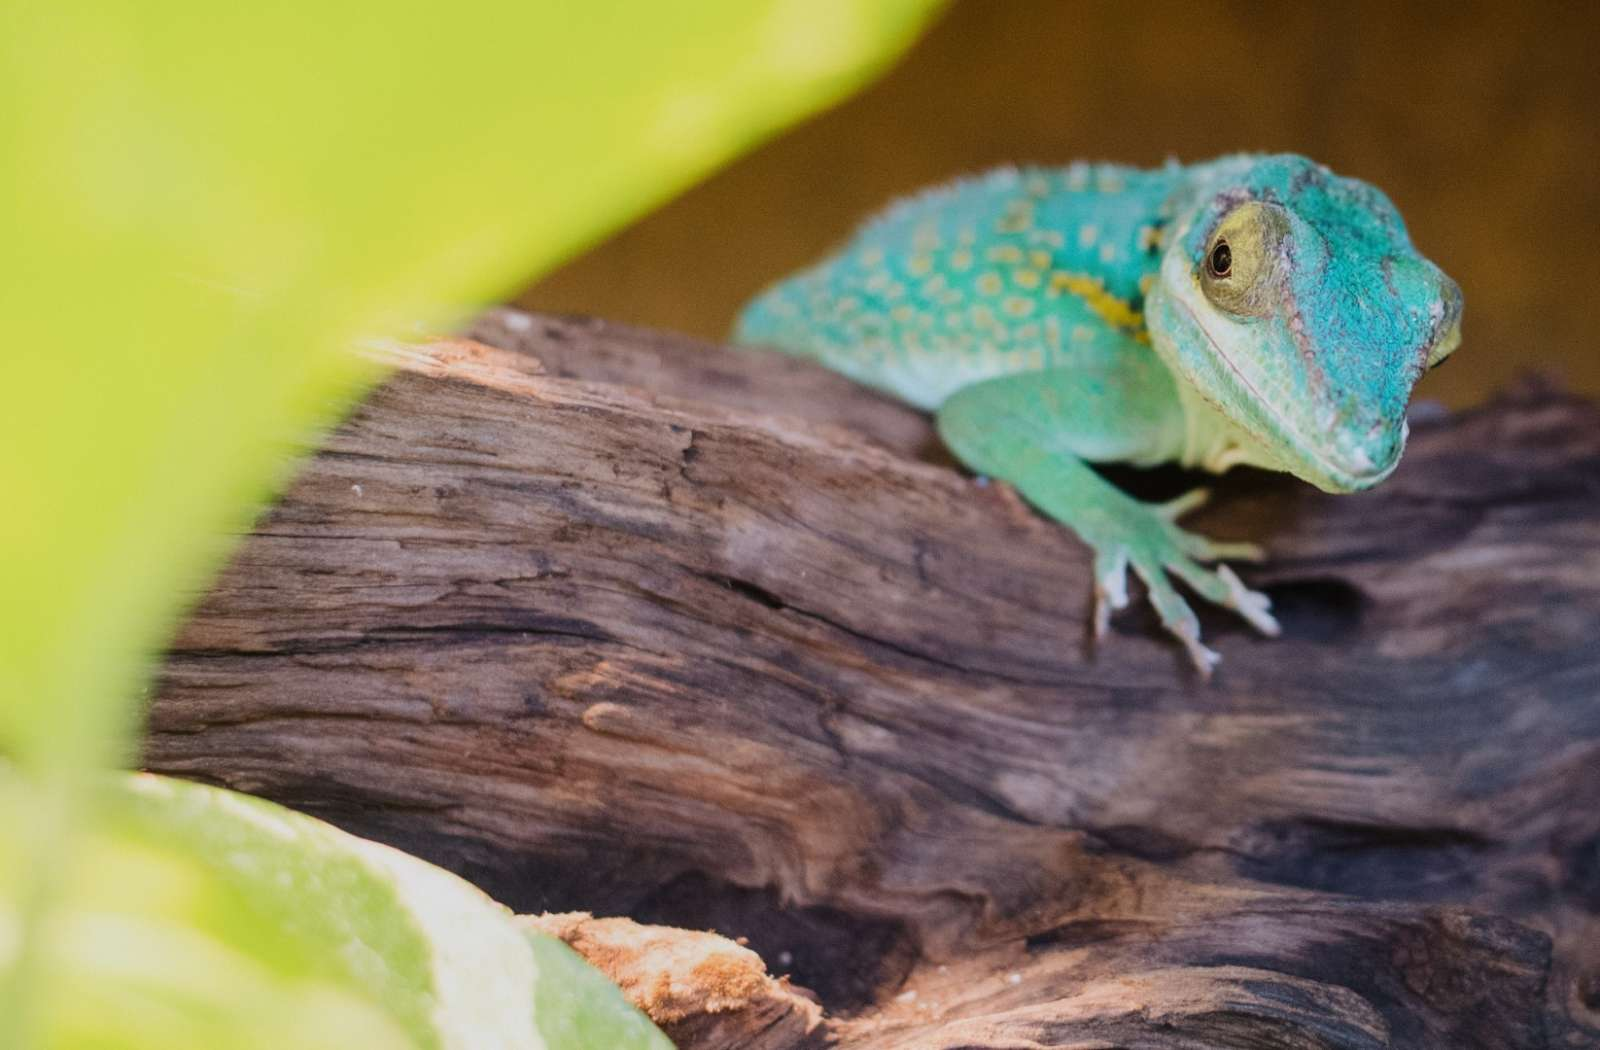 Close-up of a lizard in Baracoa Cuba